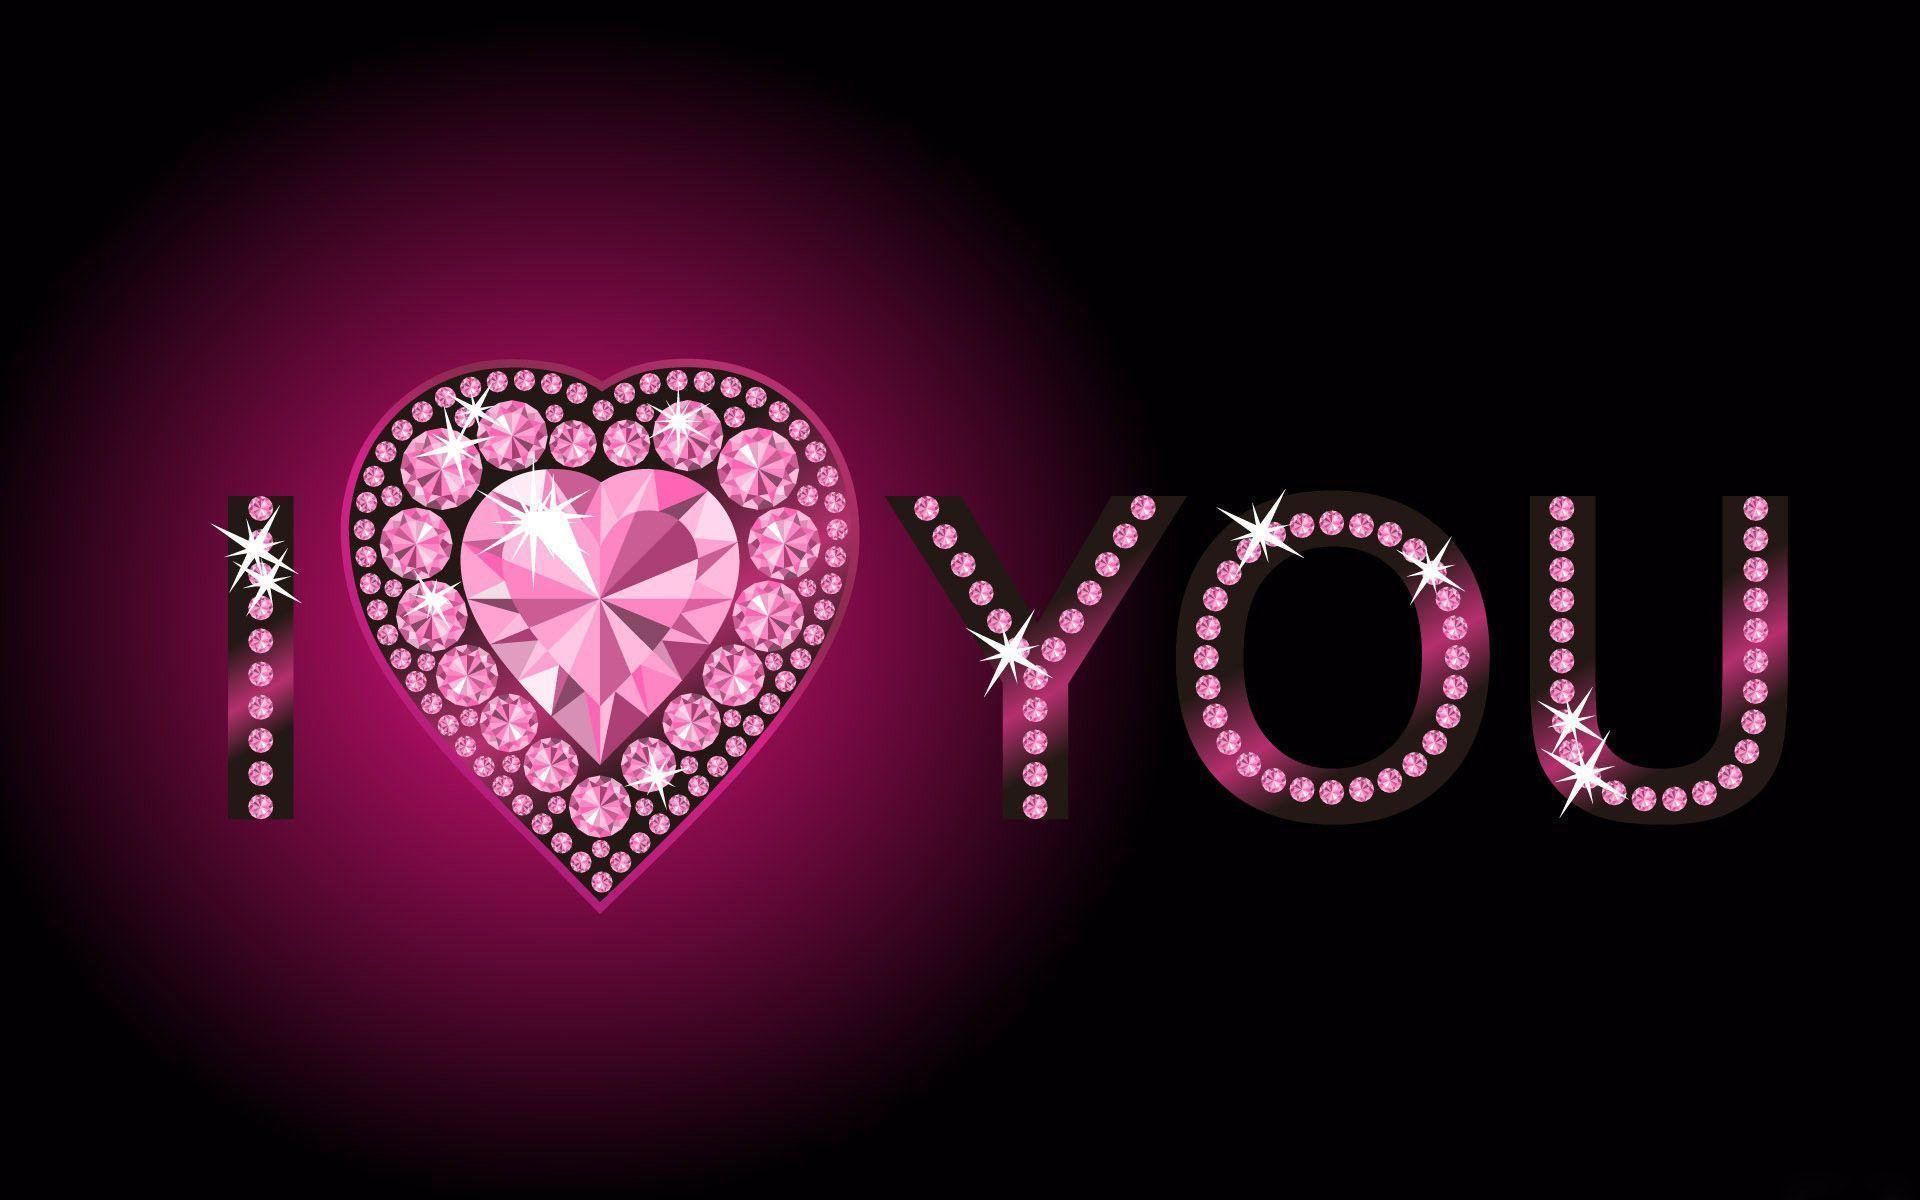 I Love You Janu Wallpaper : I Love You Image Wallpapers - Wallpaper cave